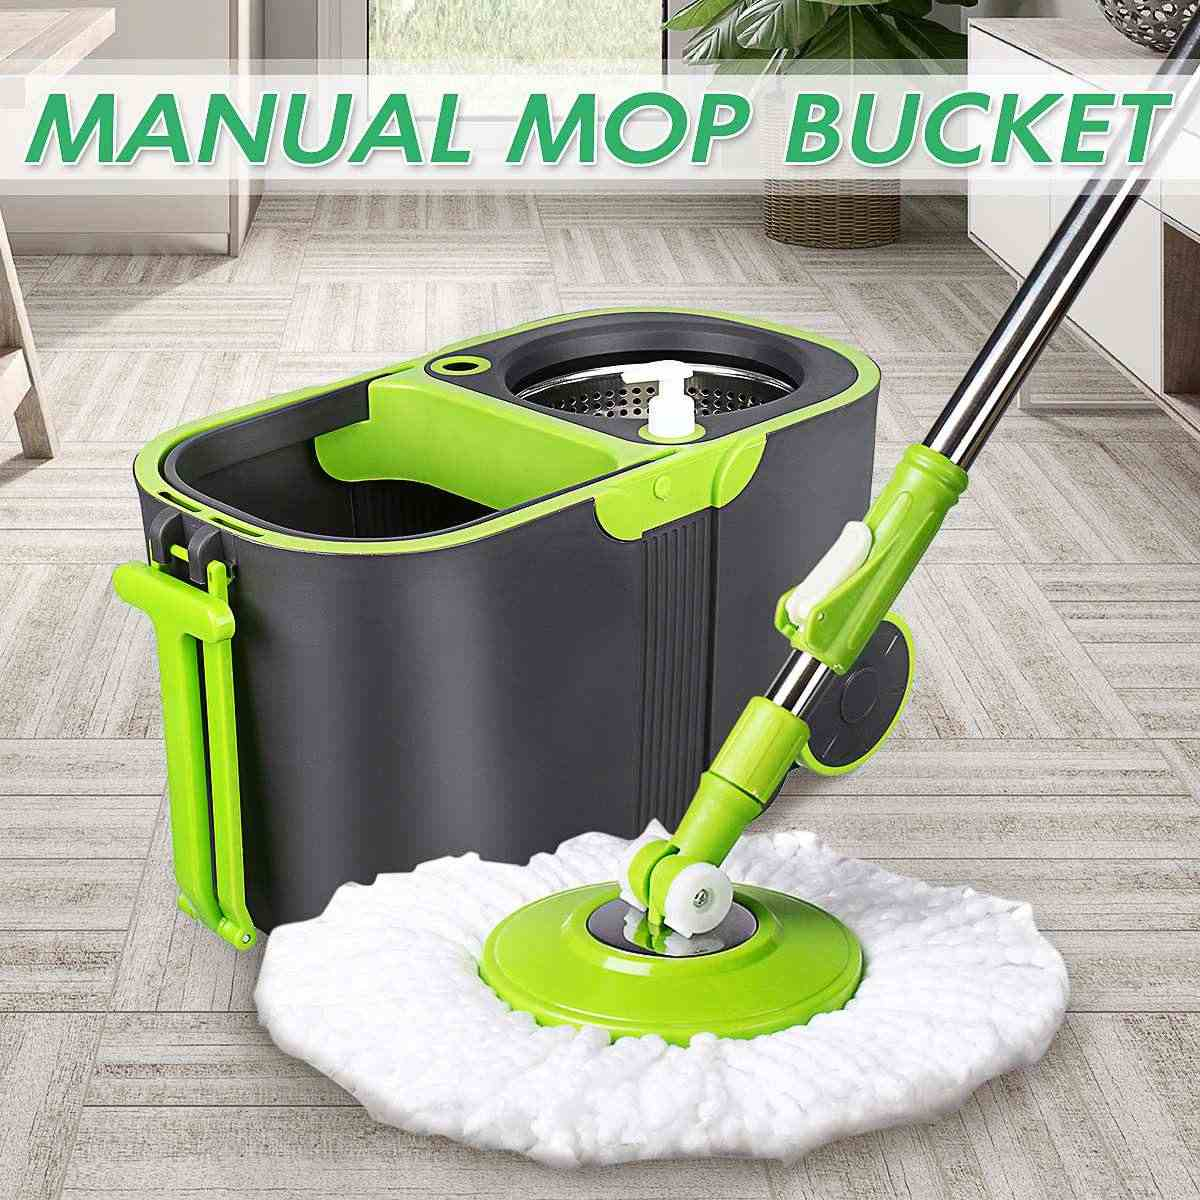 360 Degree Spin Mop Rotating and Bucket Set Wheels and 4 Microfiber Mop Heads Smart Cleaning Floors Windows Home Kitchen